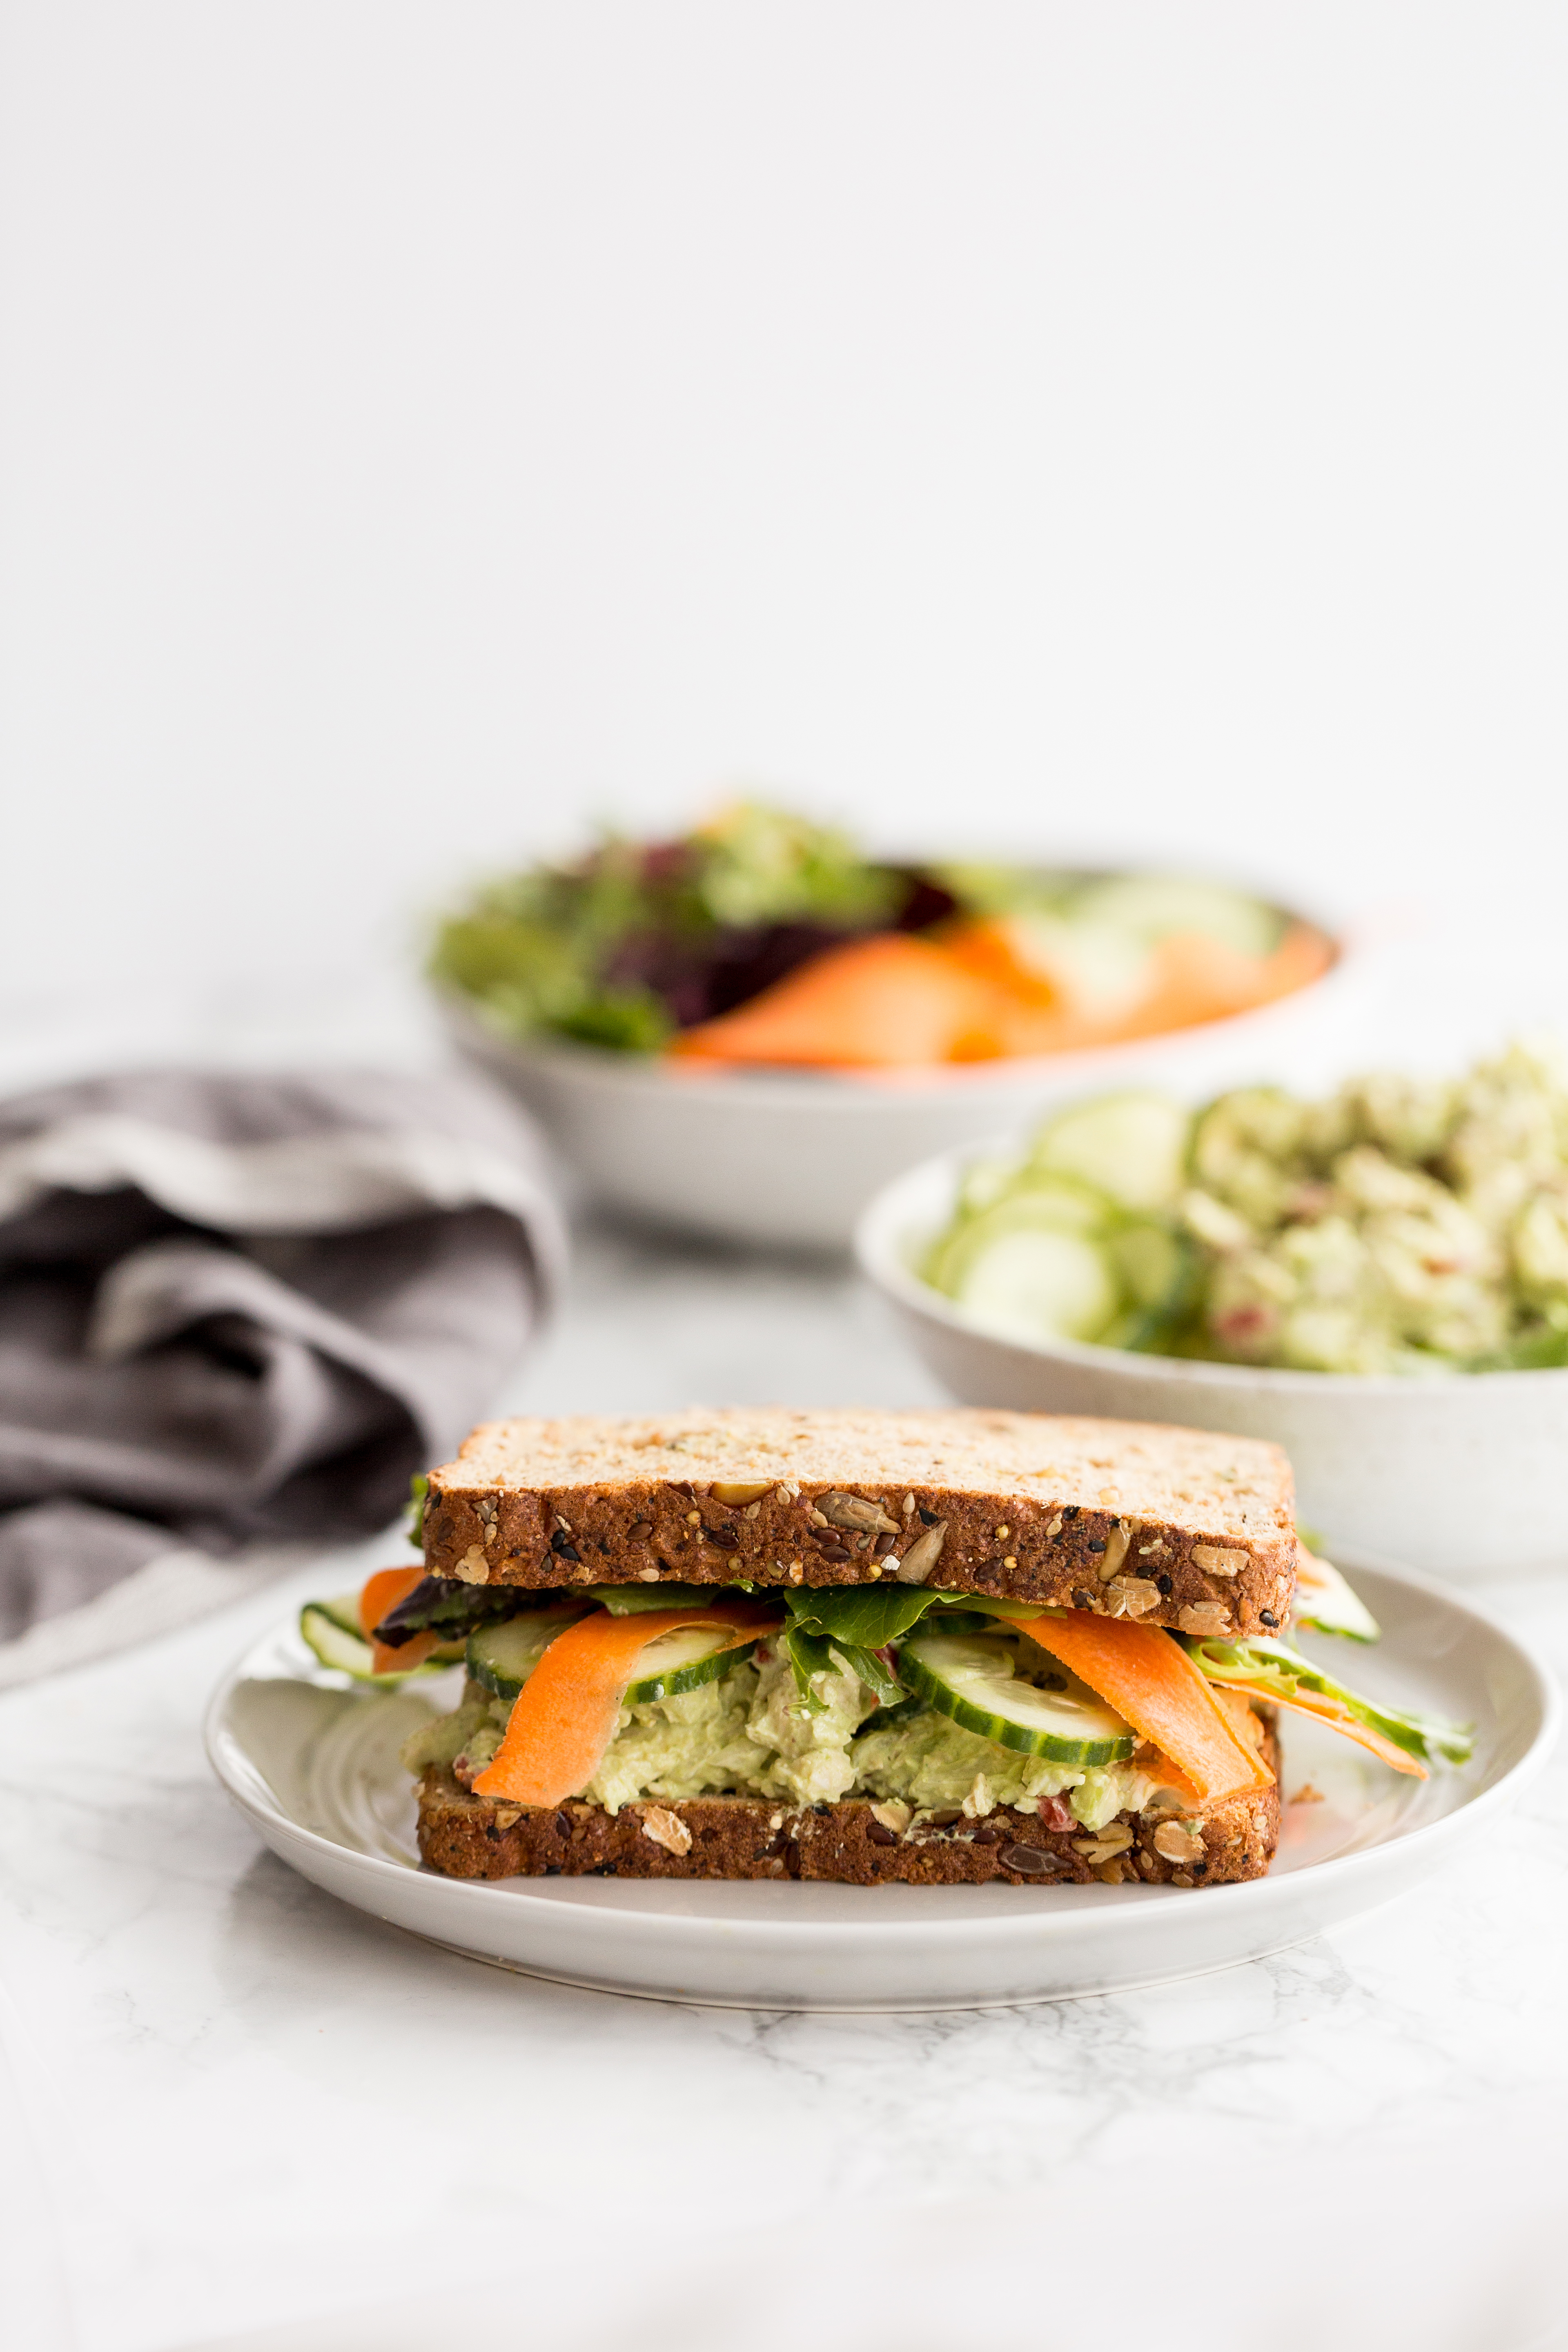 Avocado Goddess Chicken Salad Sandwich